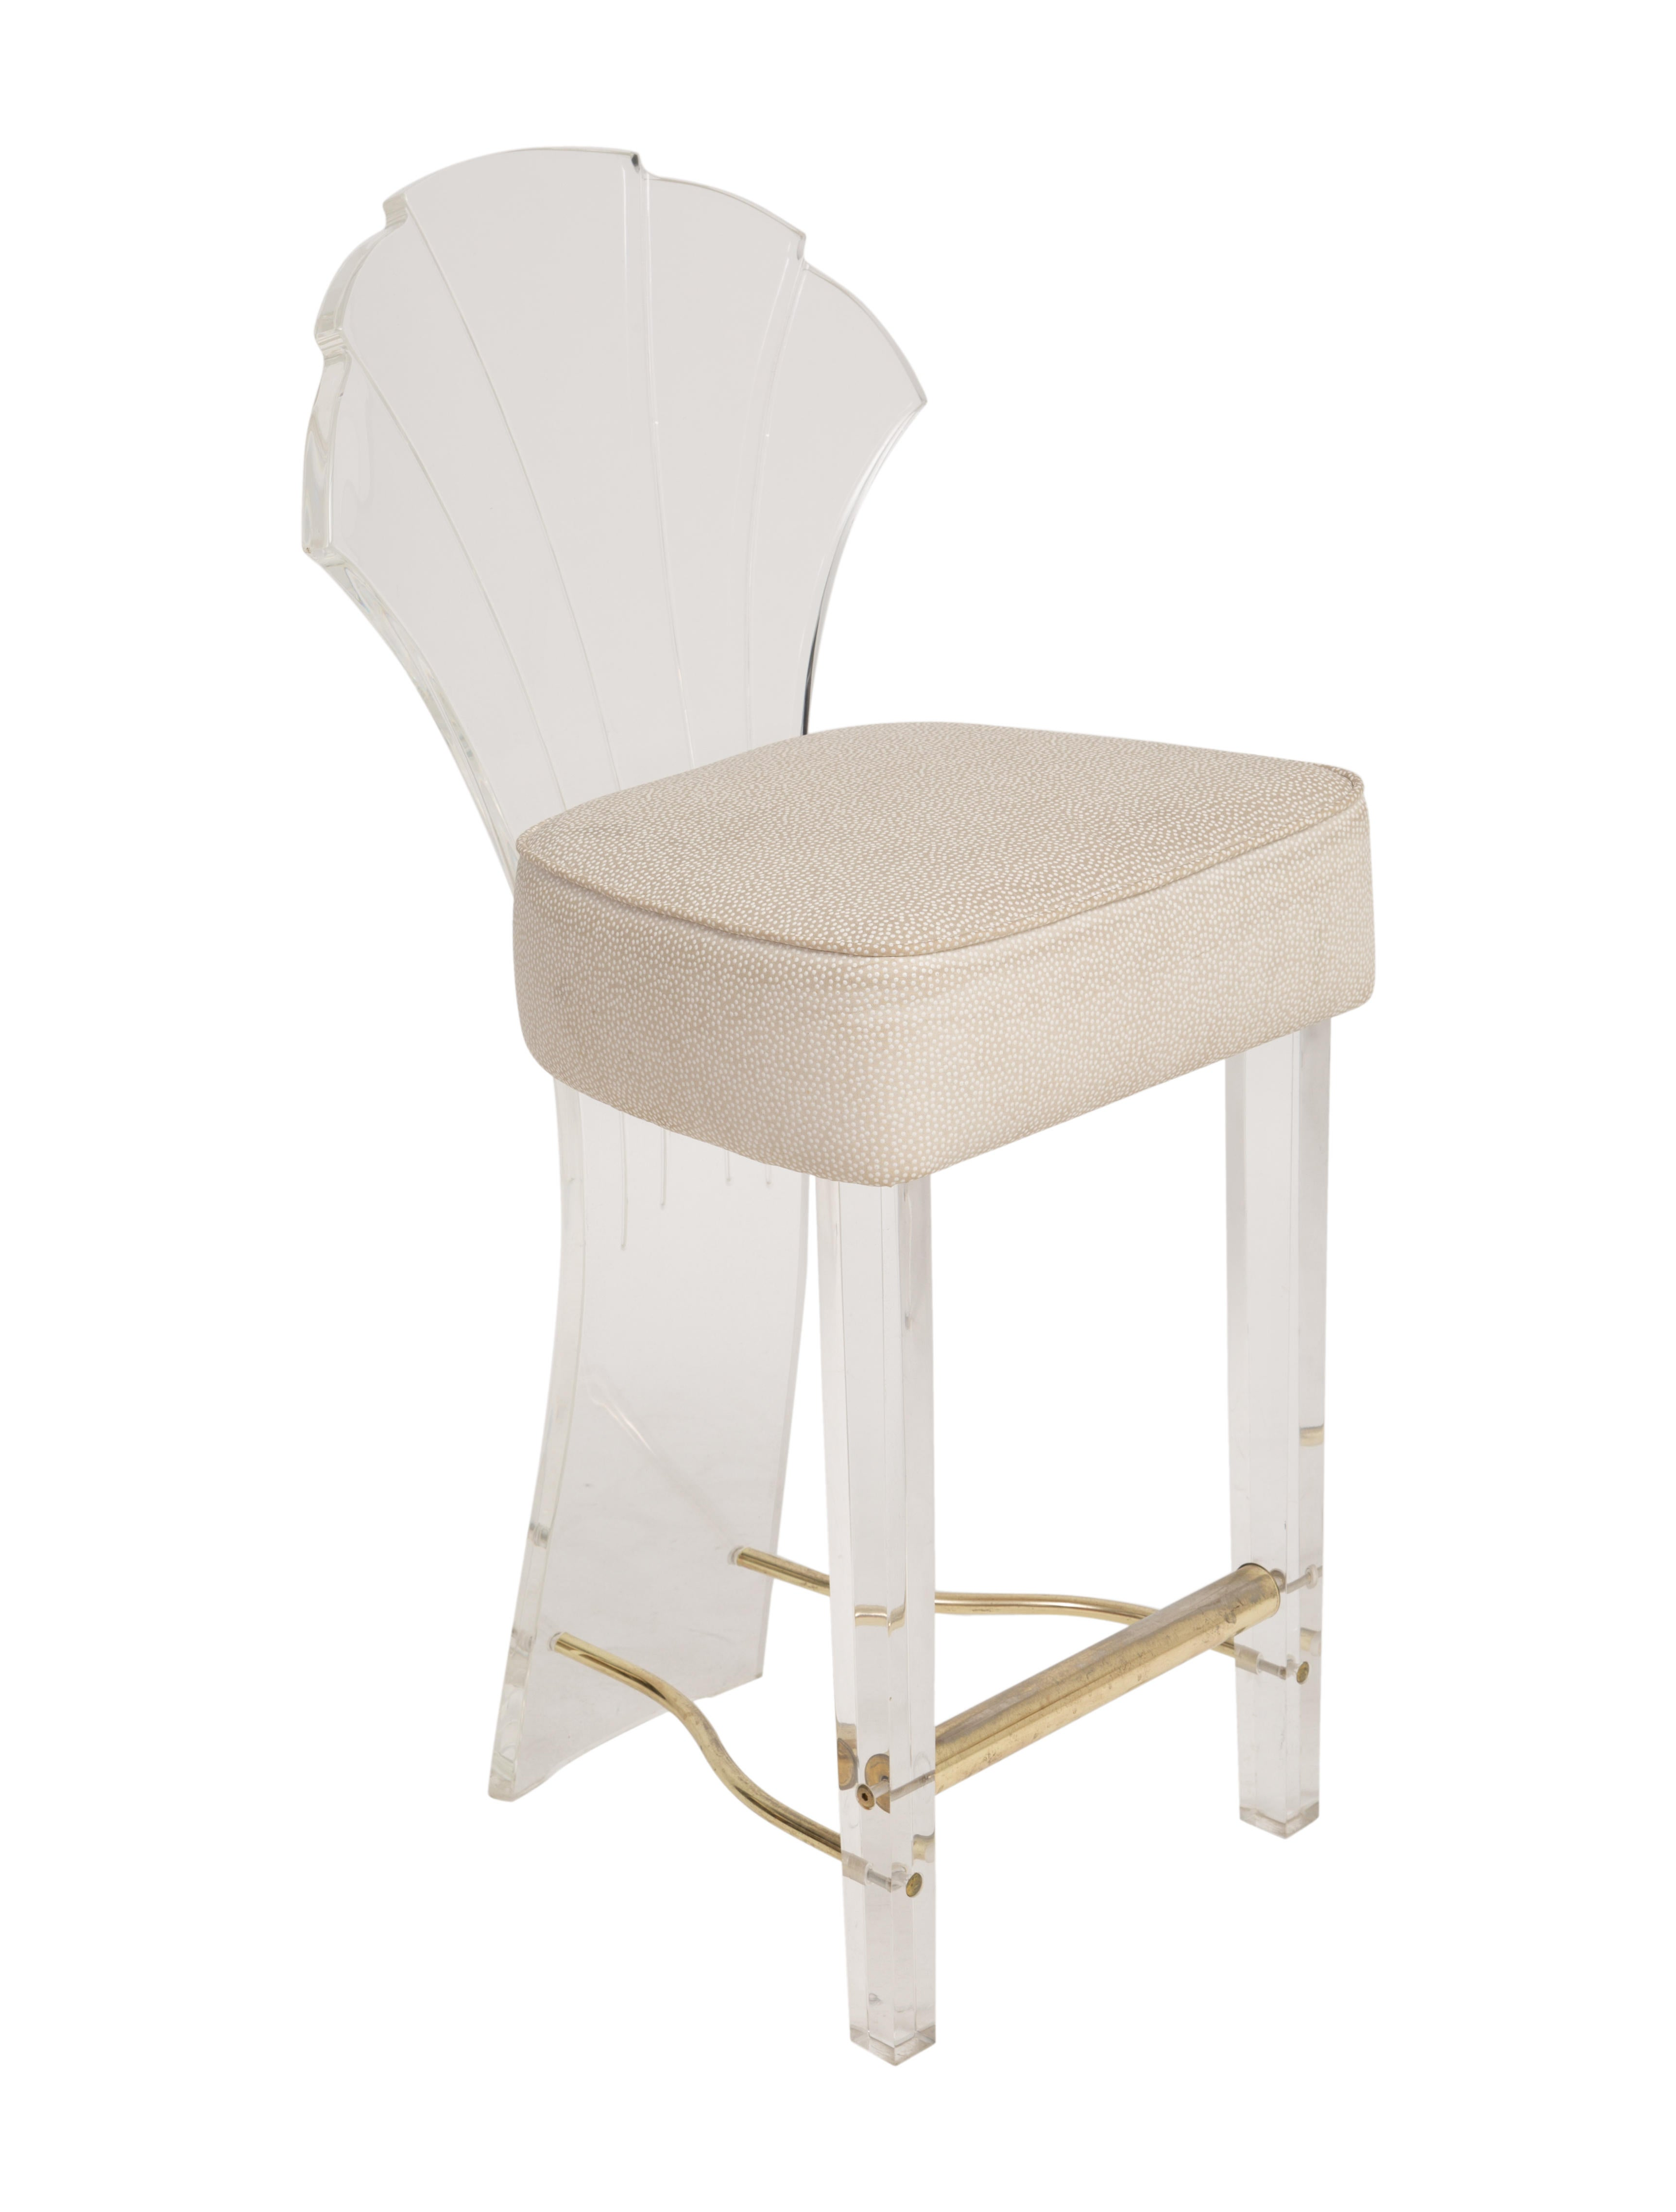 Hill Manufacturing Company Bar Stools - Furniture - CHAIR20215 ...